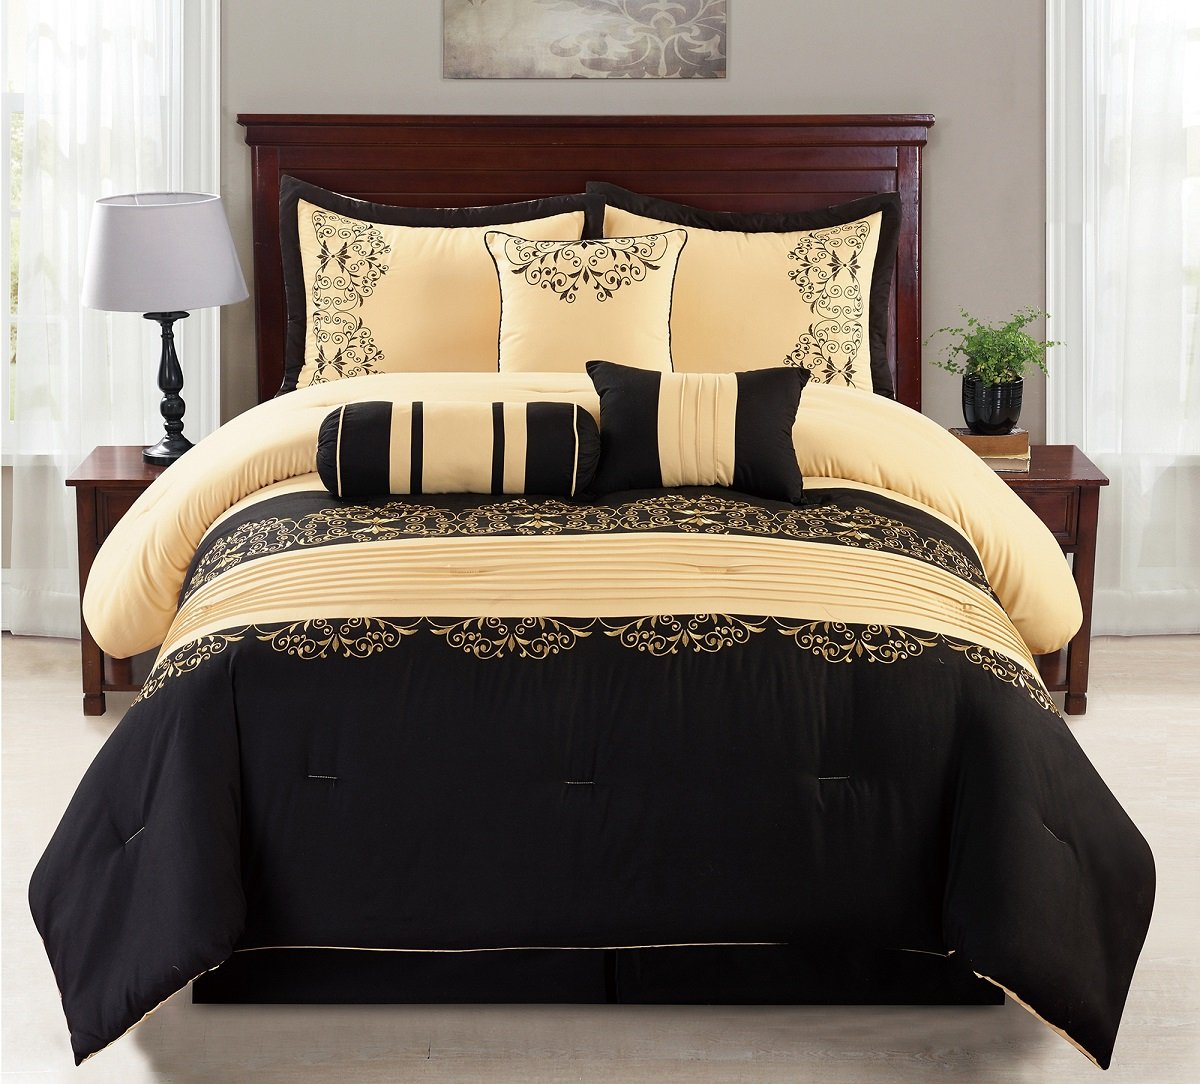 Black Comforters Ease Bedding With Style